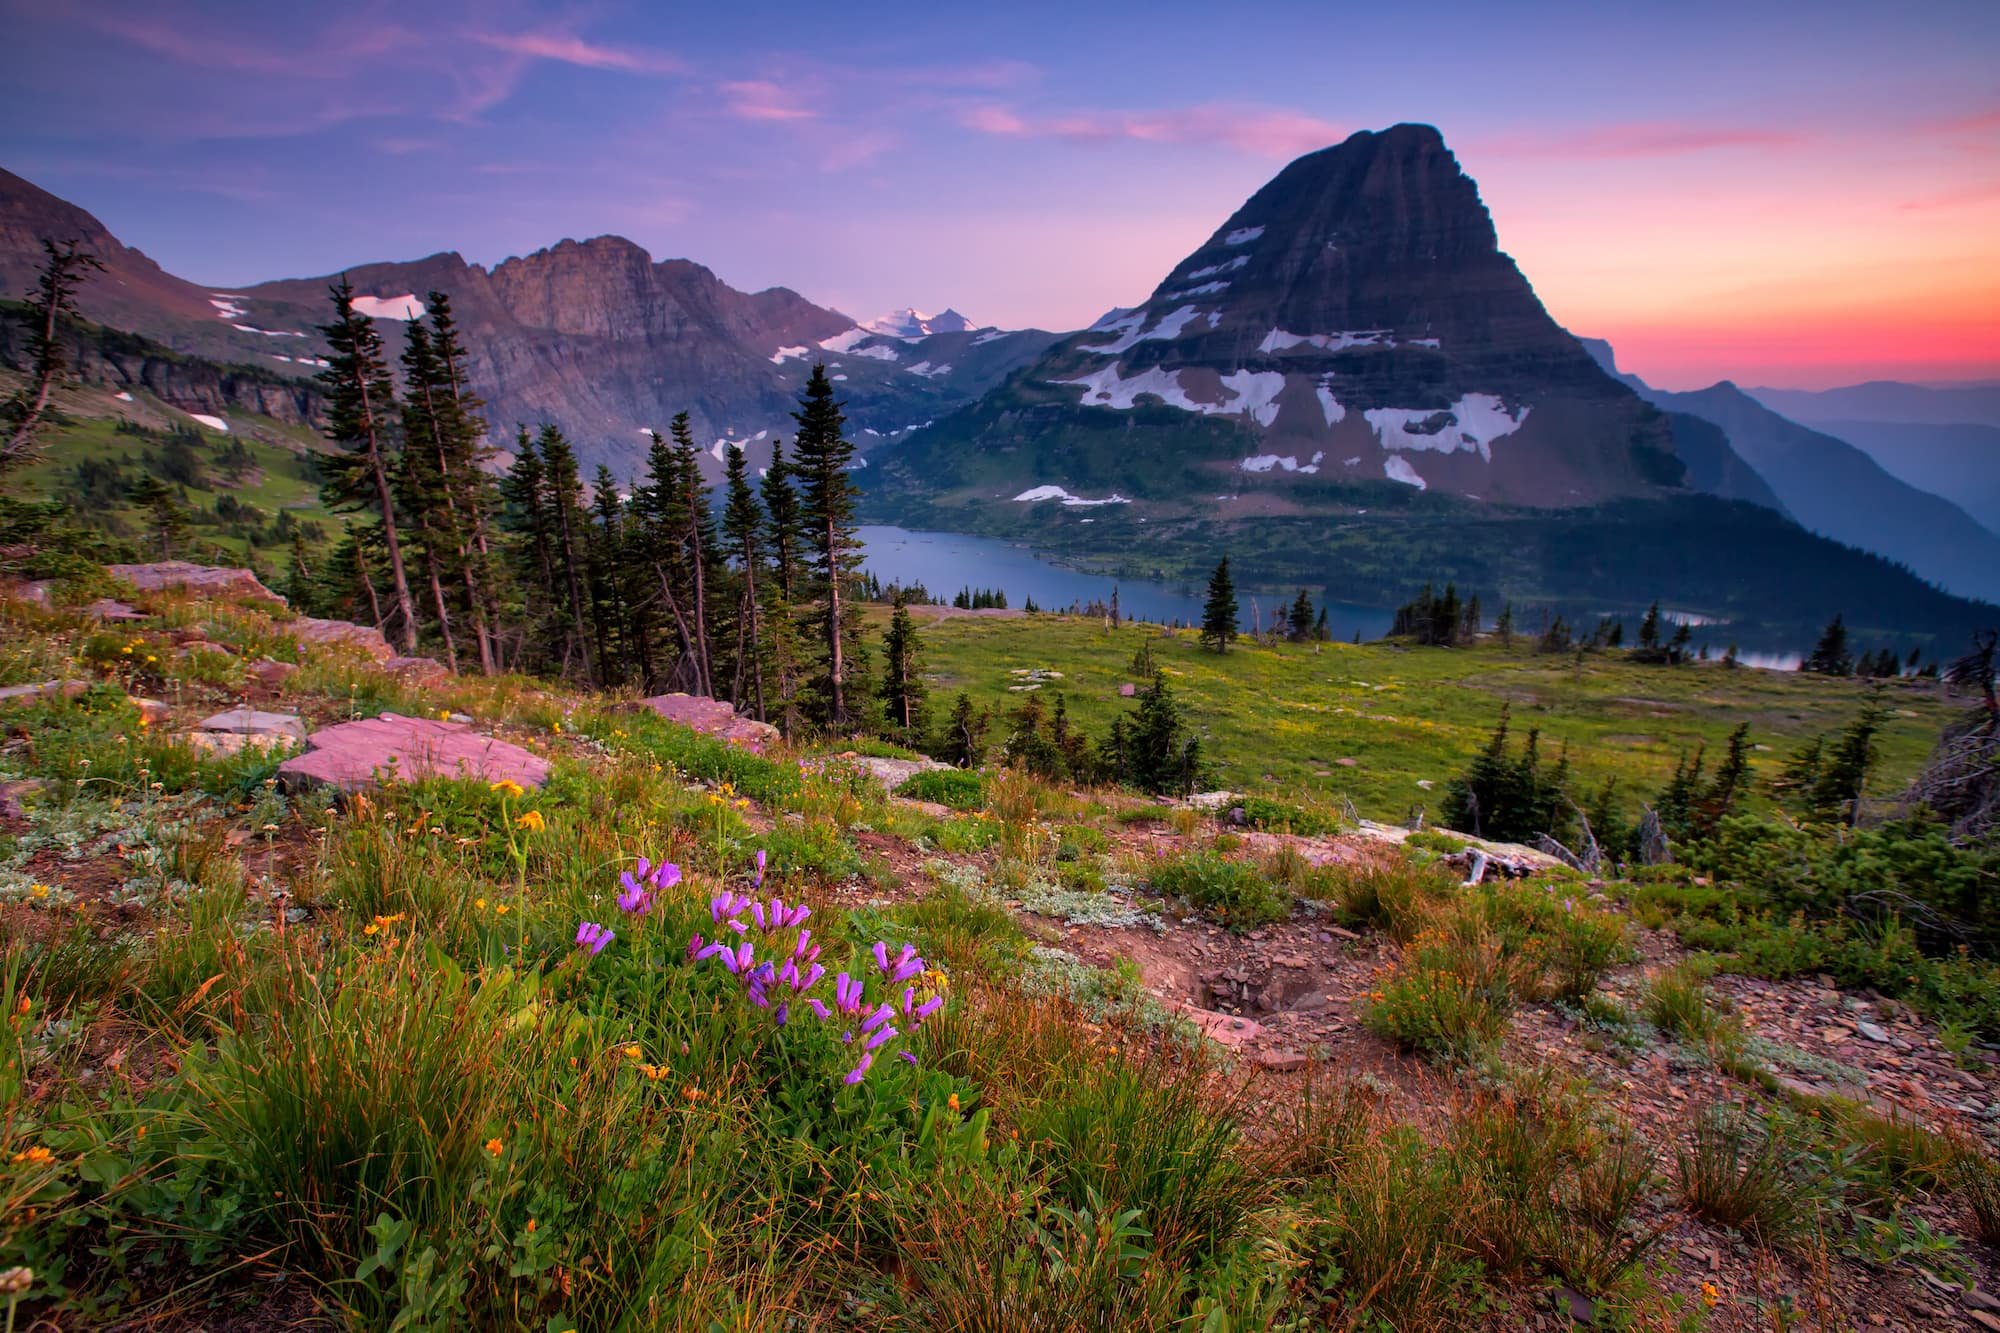 Glacier National Park makes the roundup of 14 amazing domestic & international travel destinations at the top of our adventure bucketlist for 2019.